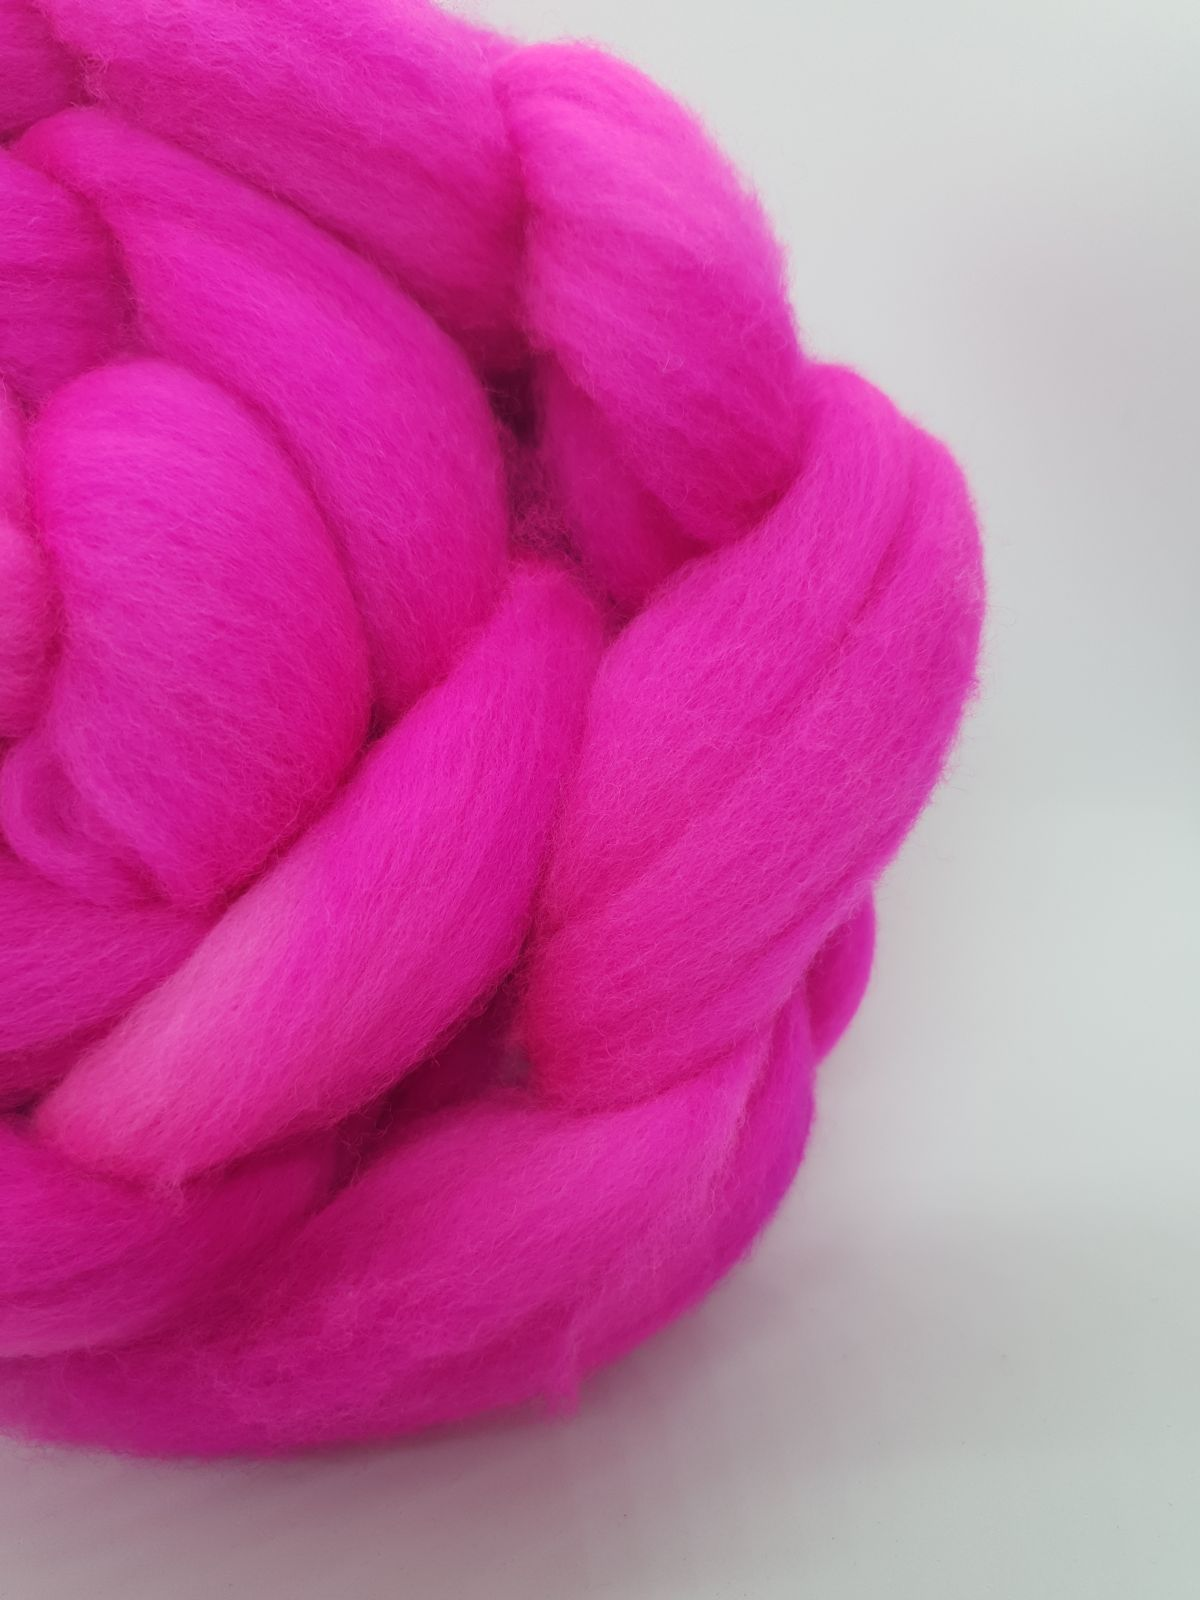 In the Pink roving